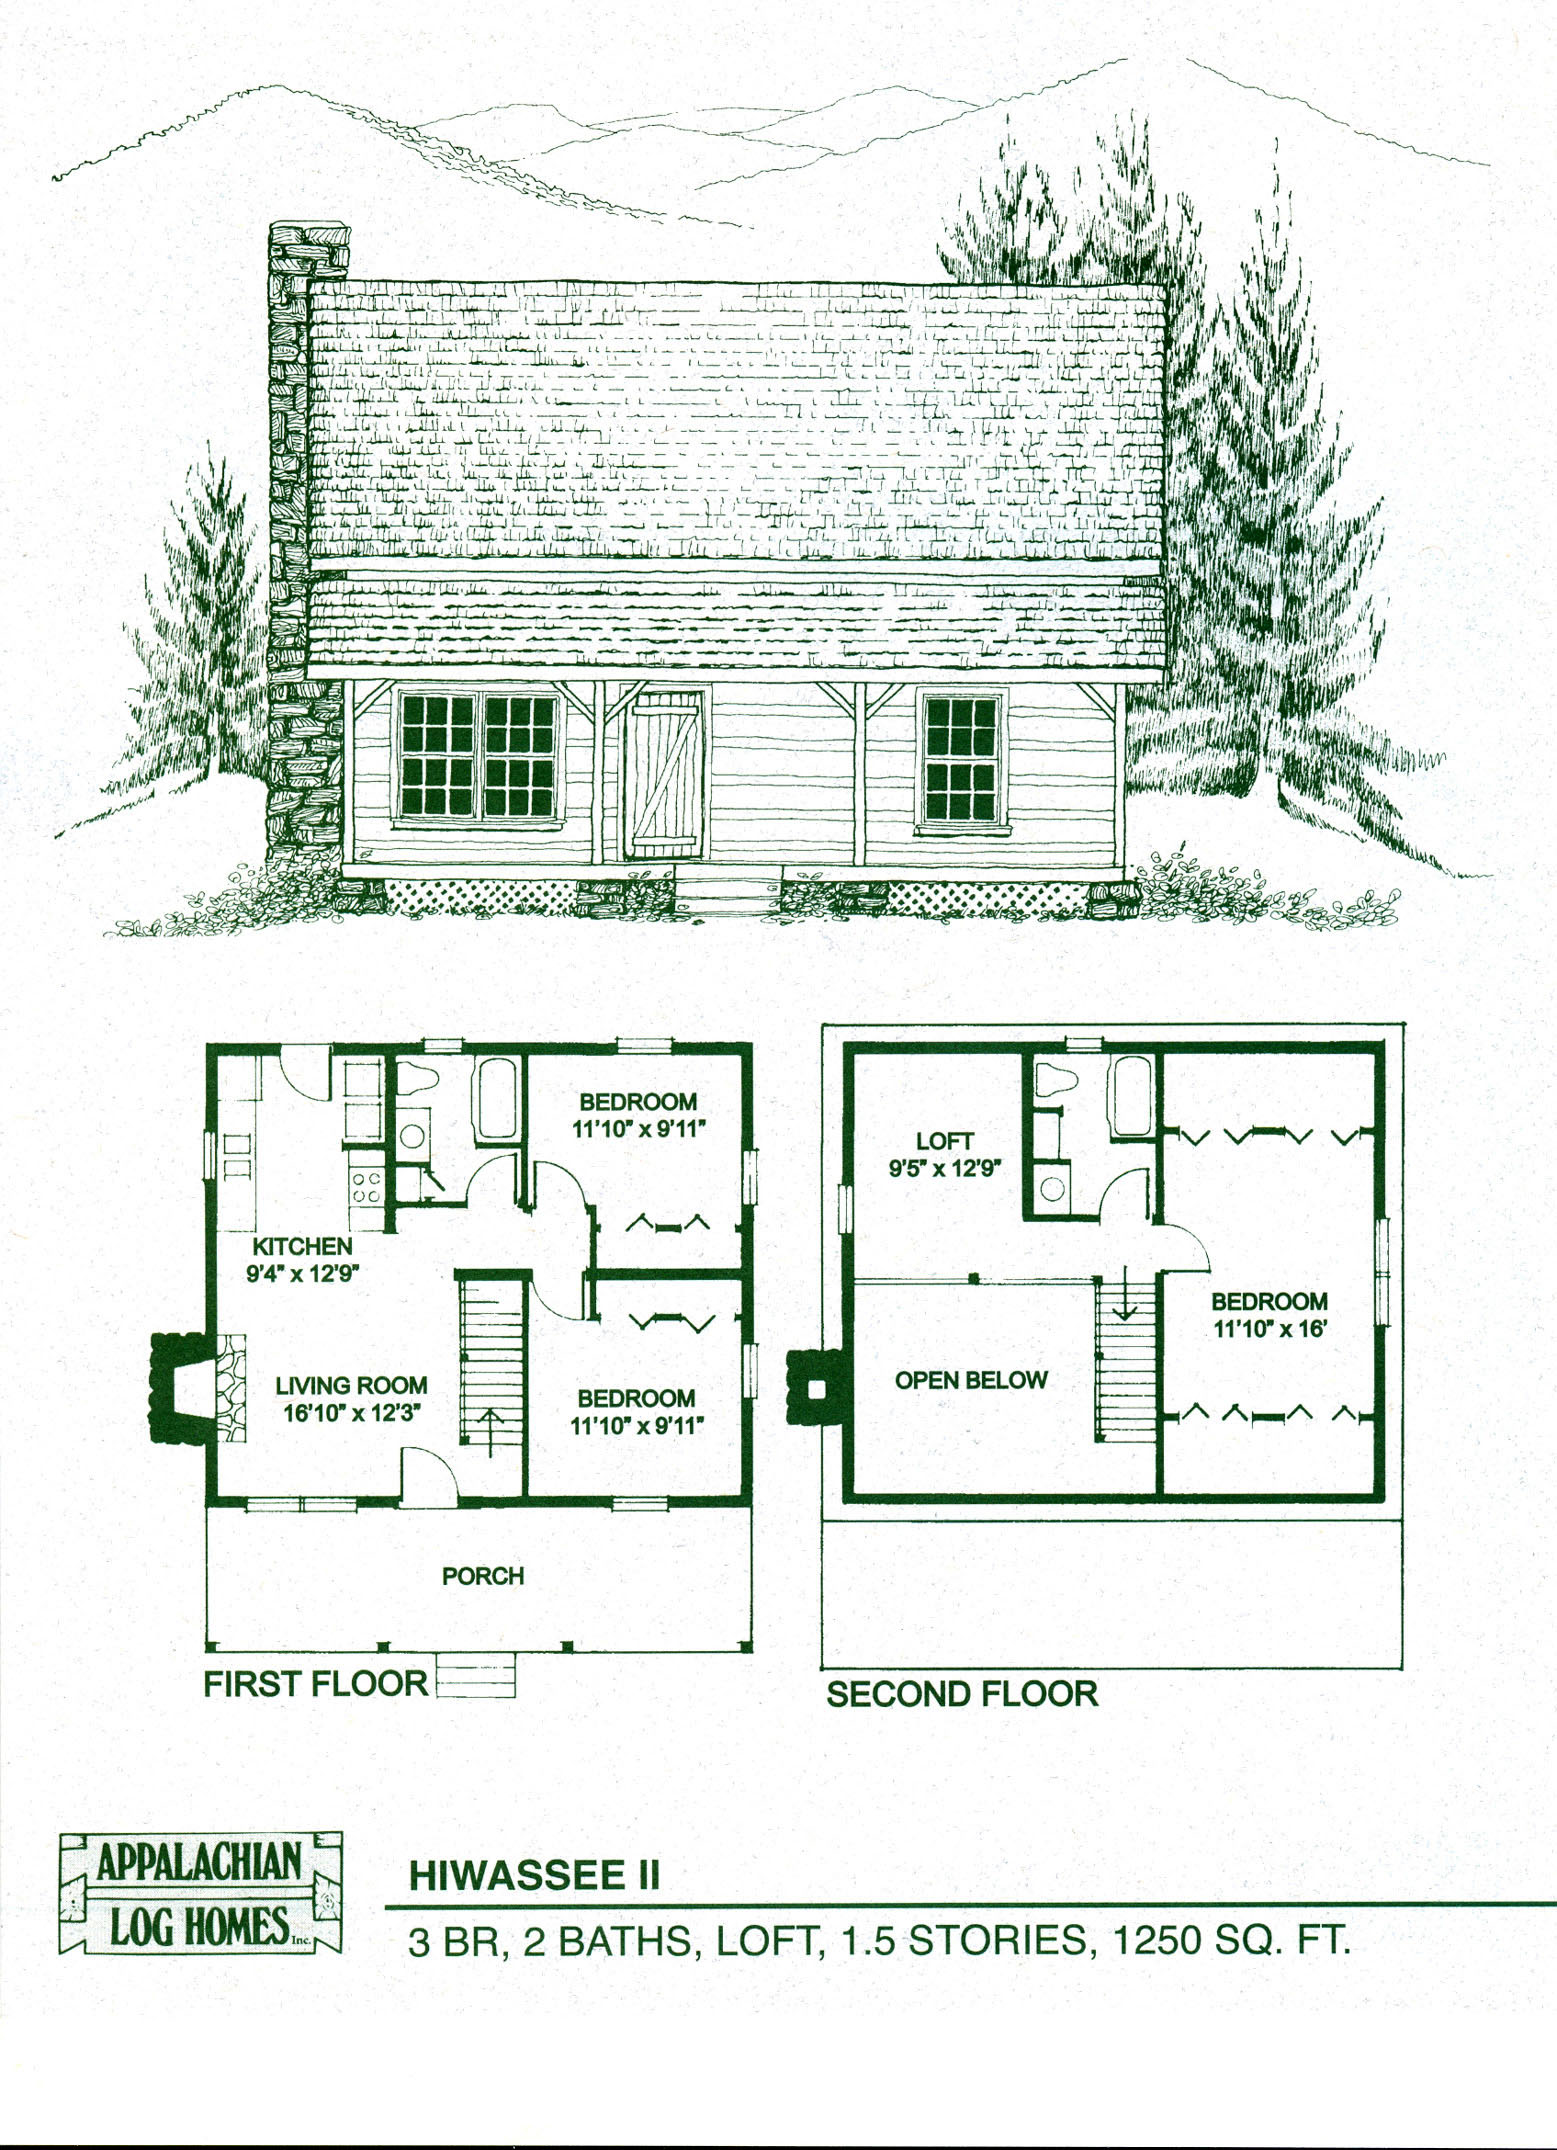 Simple log cabin drawing at free for for Simple cabin plans with loft